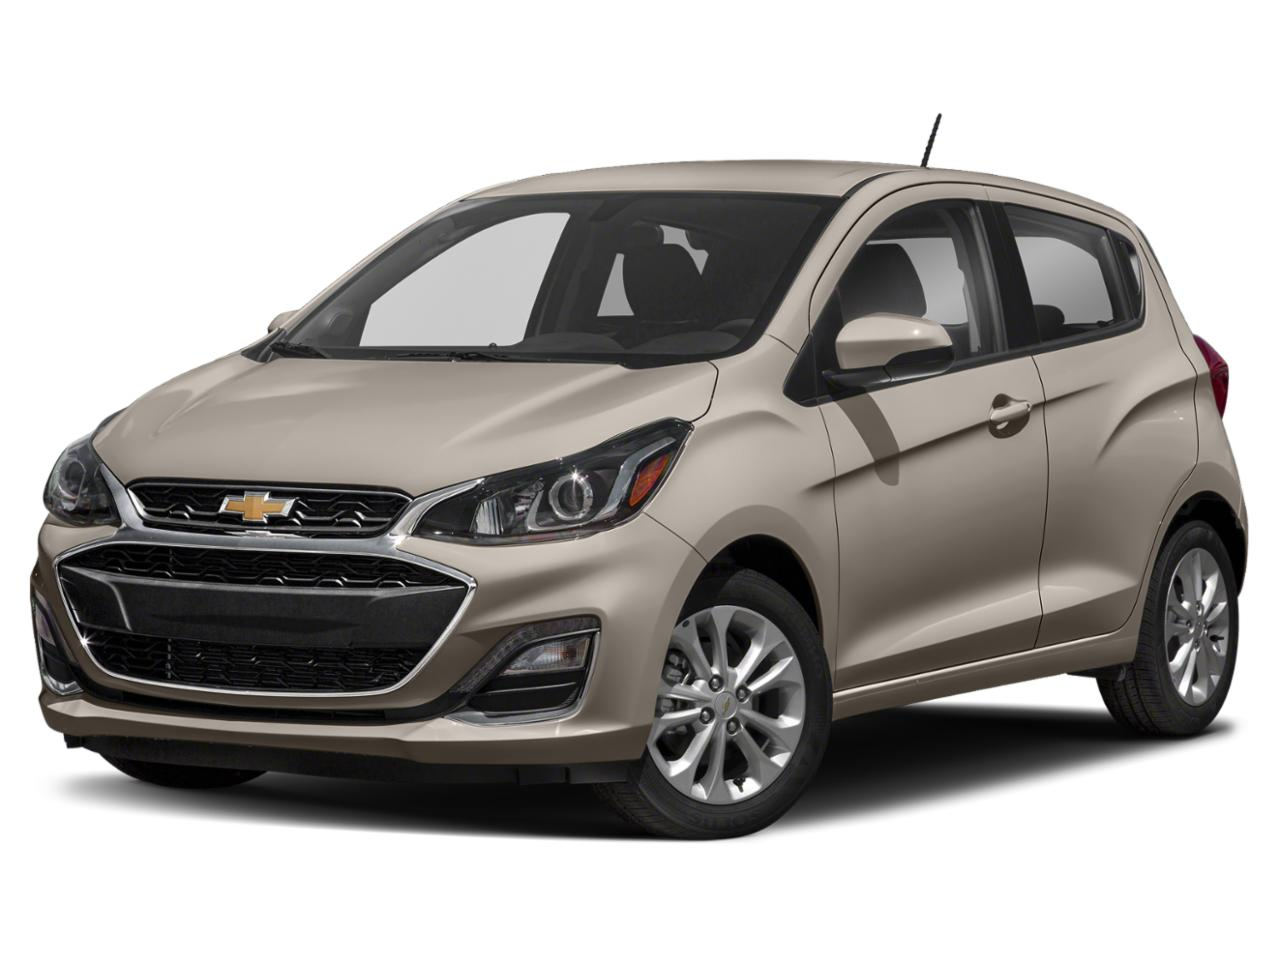 2021 Chevrolet Spark Vehicle Photo in Hudson, FL 34667